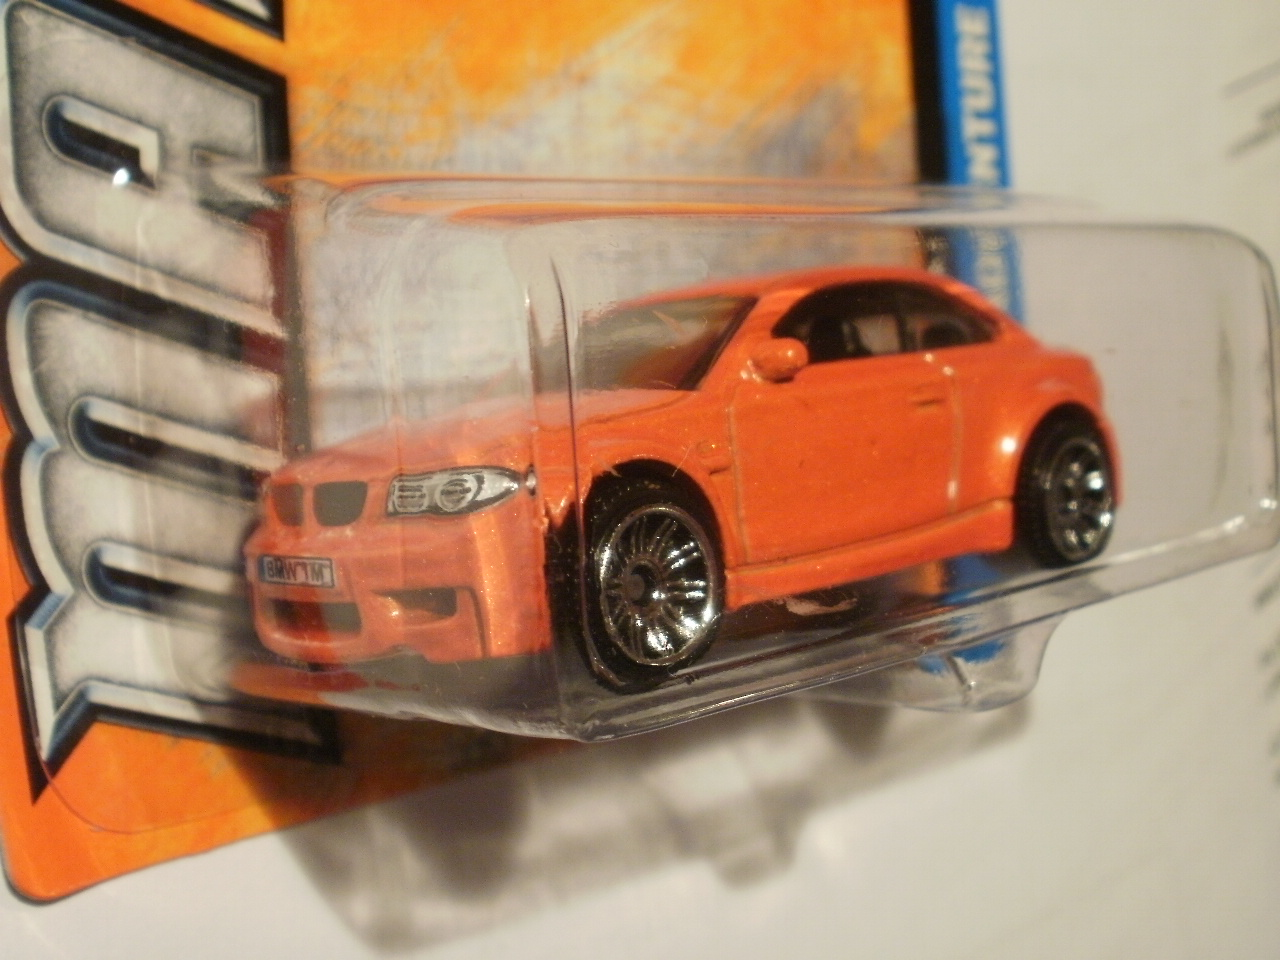 BMW 2014 1m orange nose.JPG.JPG